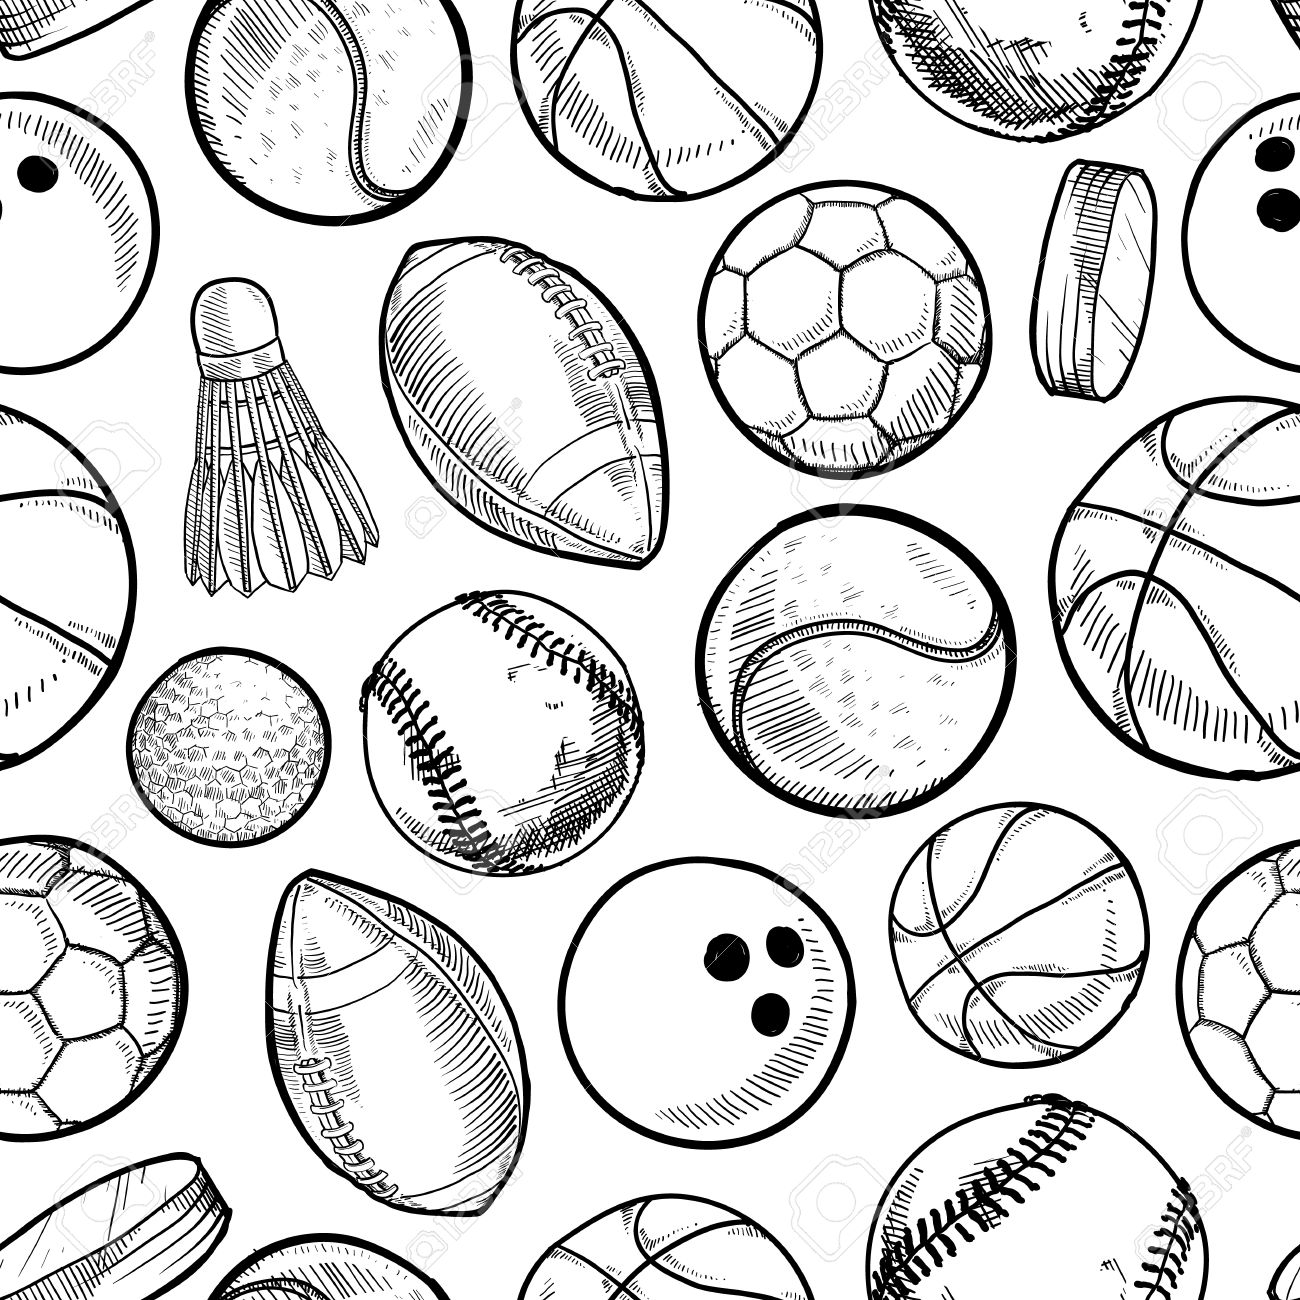 1300x1300 Doodle Style Sports Equipment Seamless Stock Photo, Picture